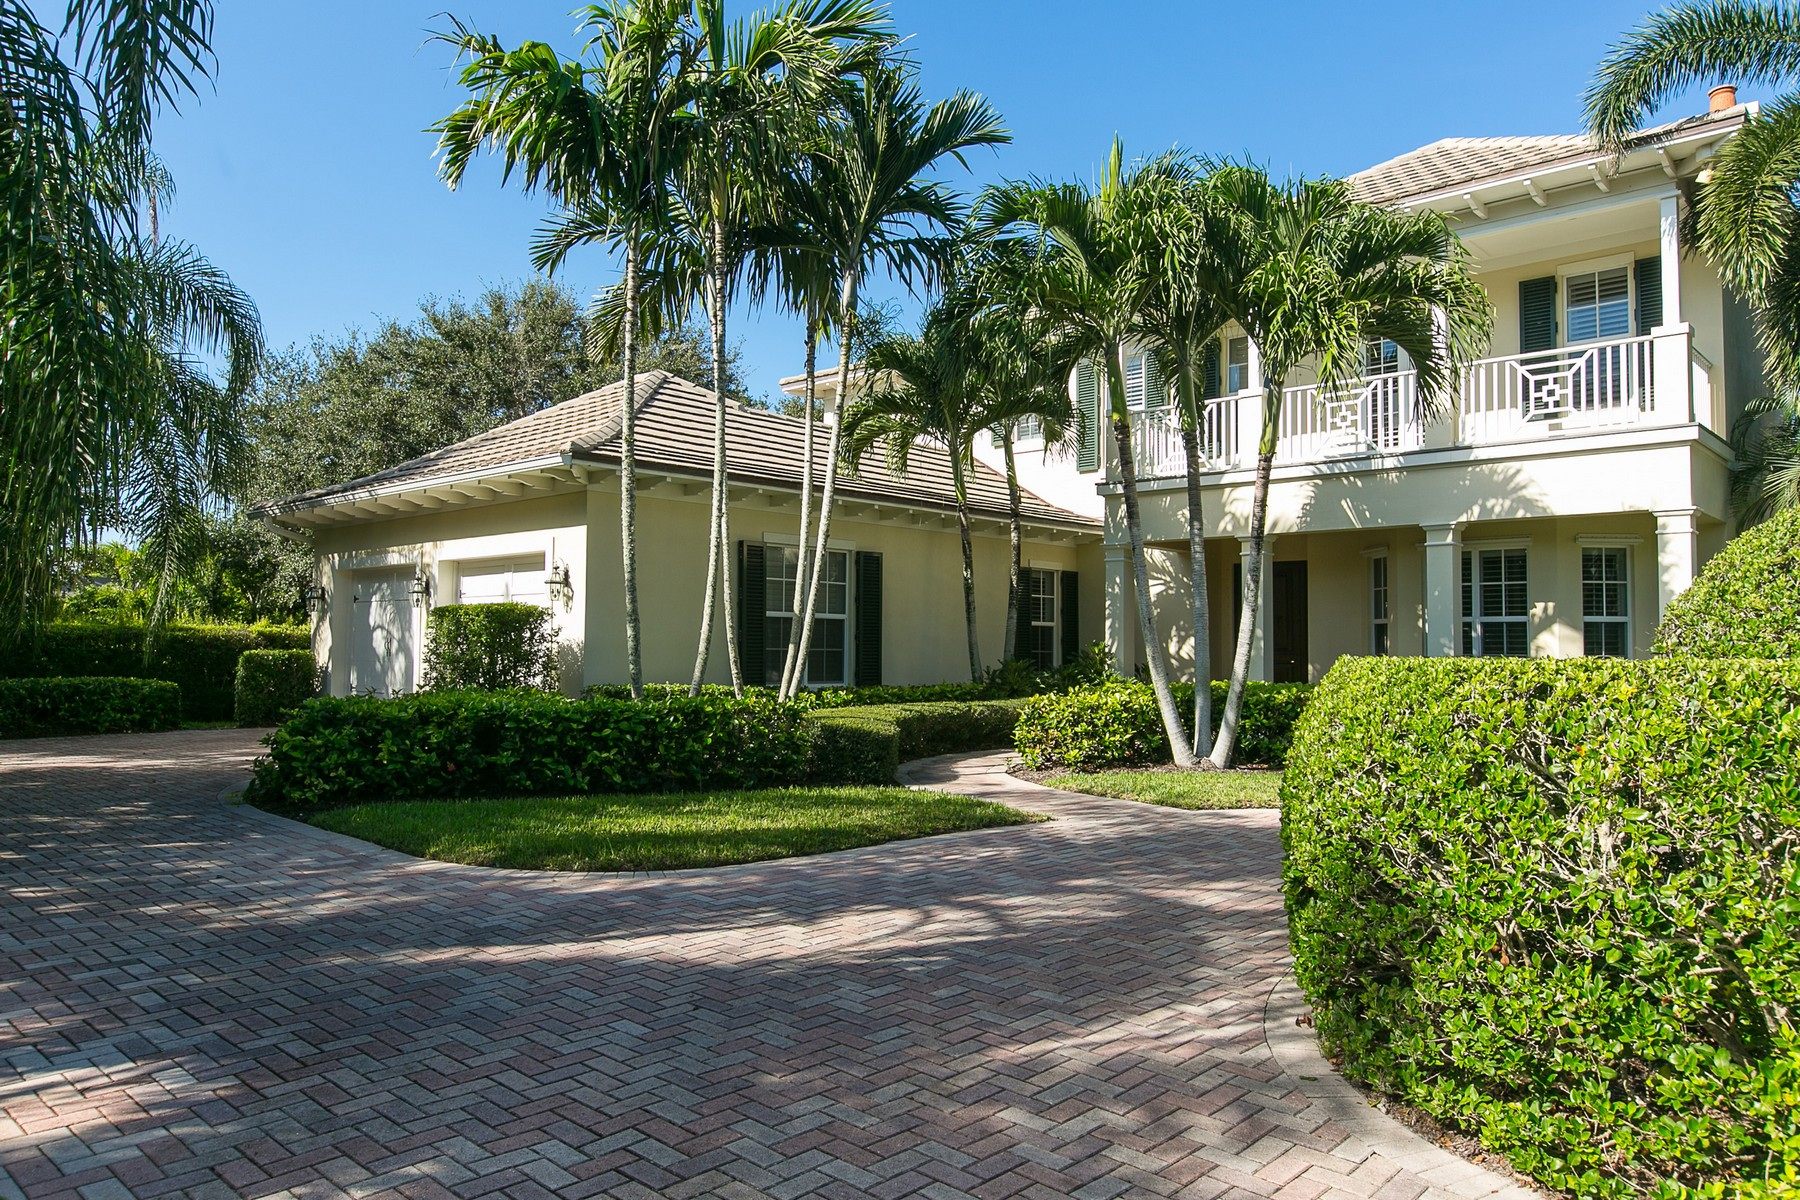 Tek Ailelik Ev için Satış at Luxurious home in Palm Isle Plantation 212 Coconut Creek Court Indian River Shores, Florida, 32963 Amerika Birleşik Devletleri